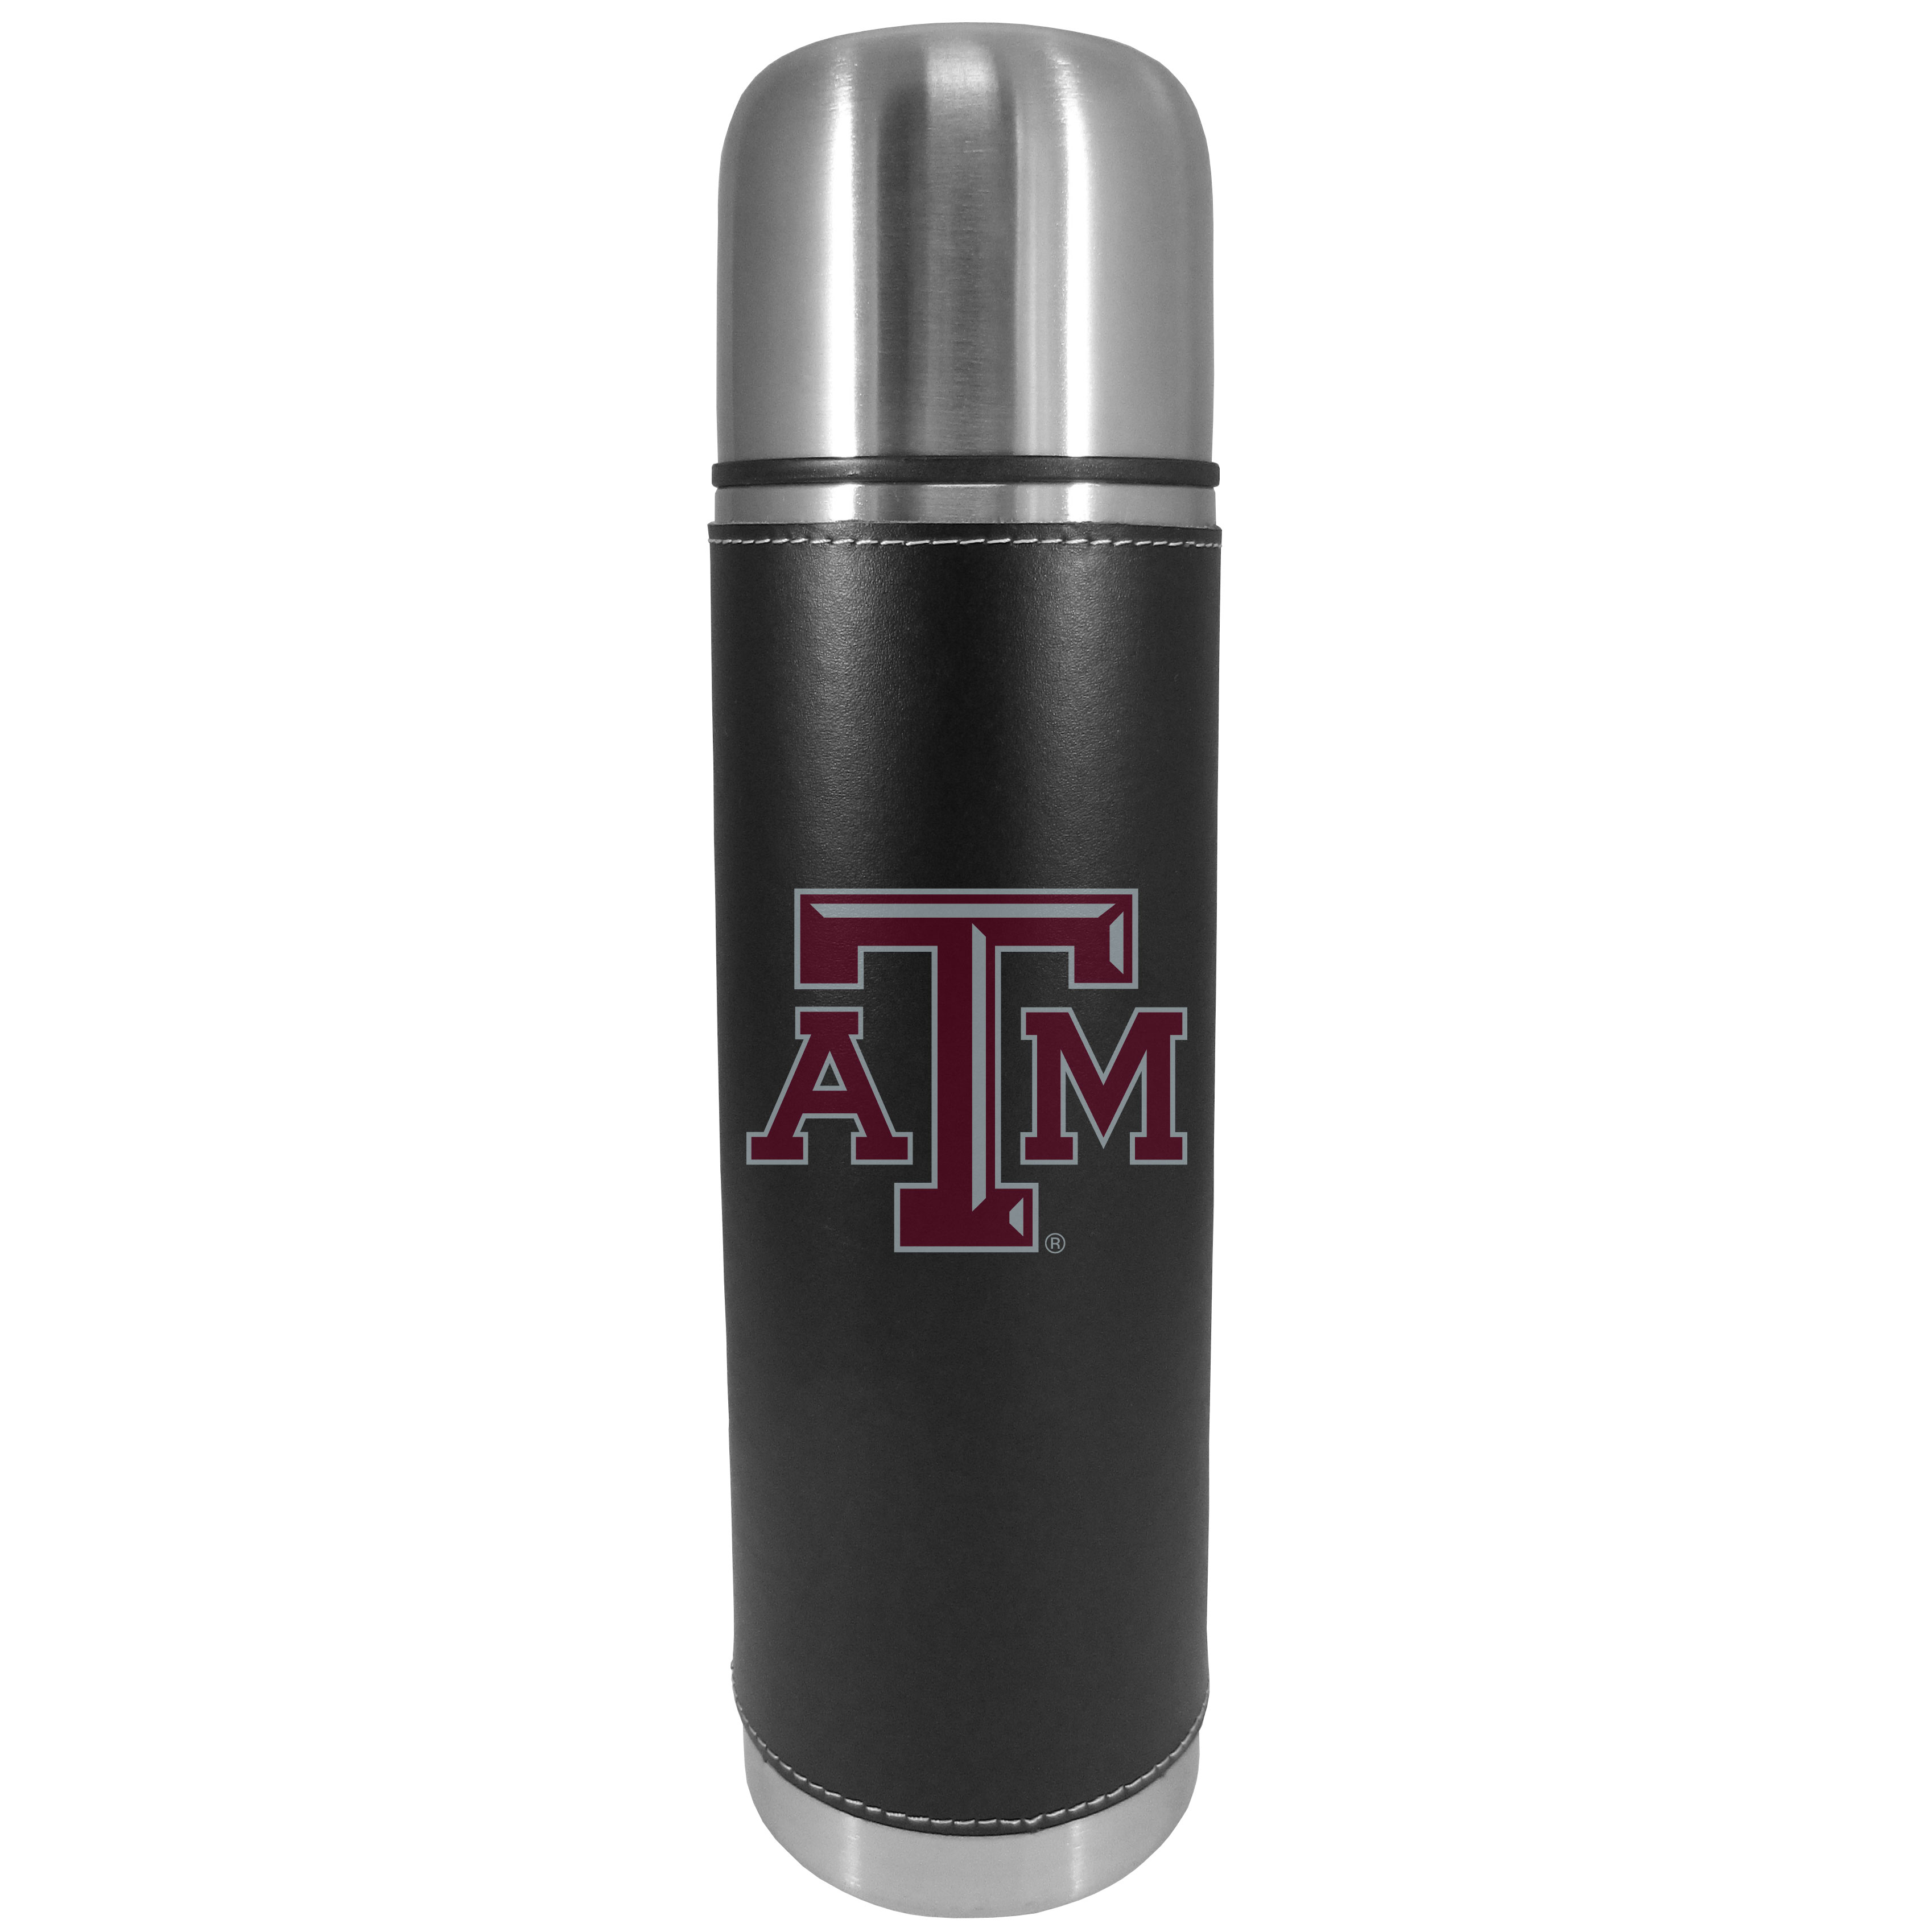 Texas A and M Aggies Graphics Thermos - This attractive, 26 ounce Texas A & M Aggies thermos is a great way to keep your beverages hot while on the go. The 11 inch tall, vacuum sealed thermos features a black vinyl wrap with stitched details and a digitally printed team logo. The lid screws on and can be used as a cup.